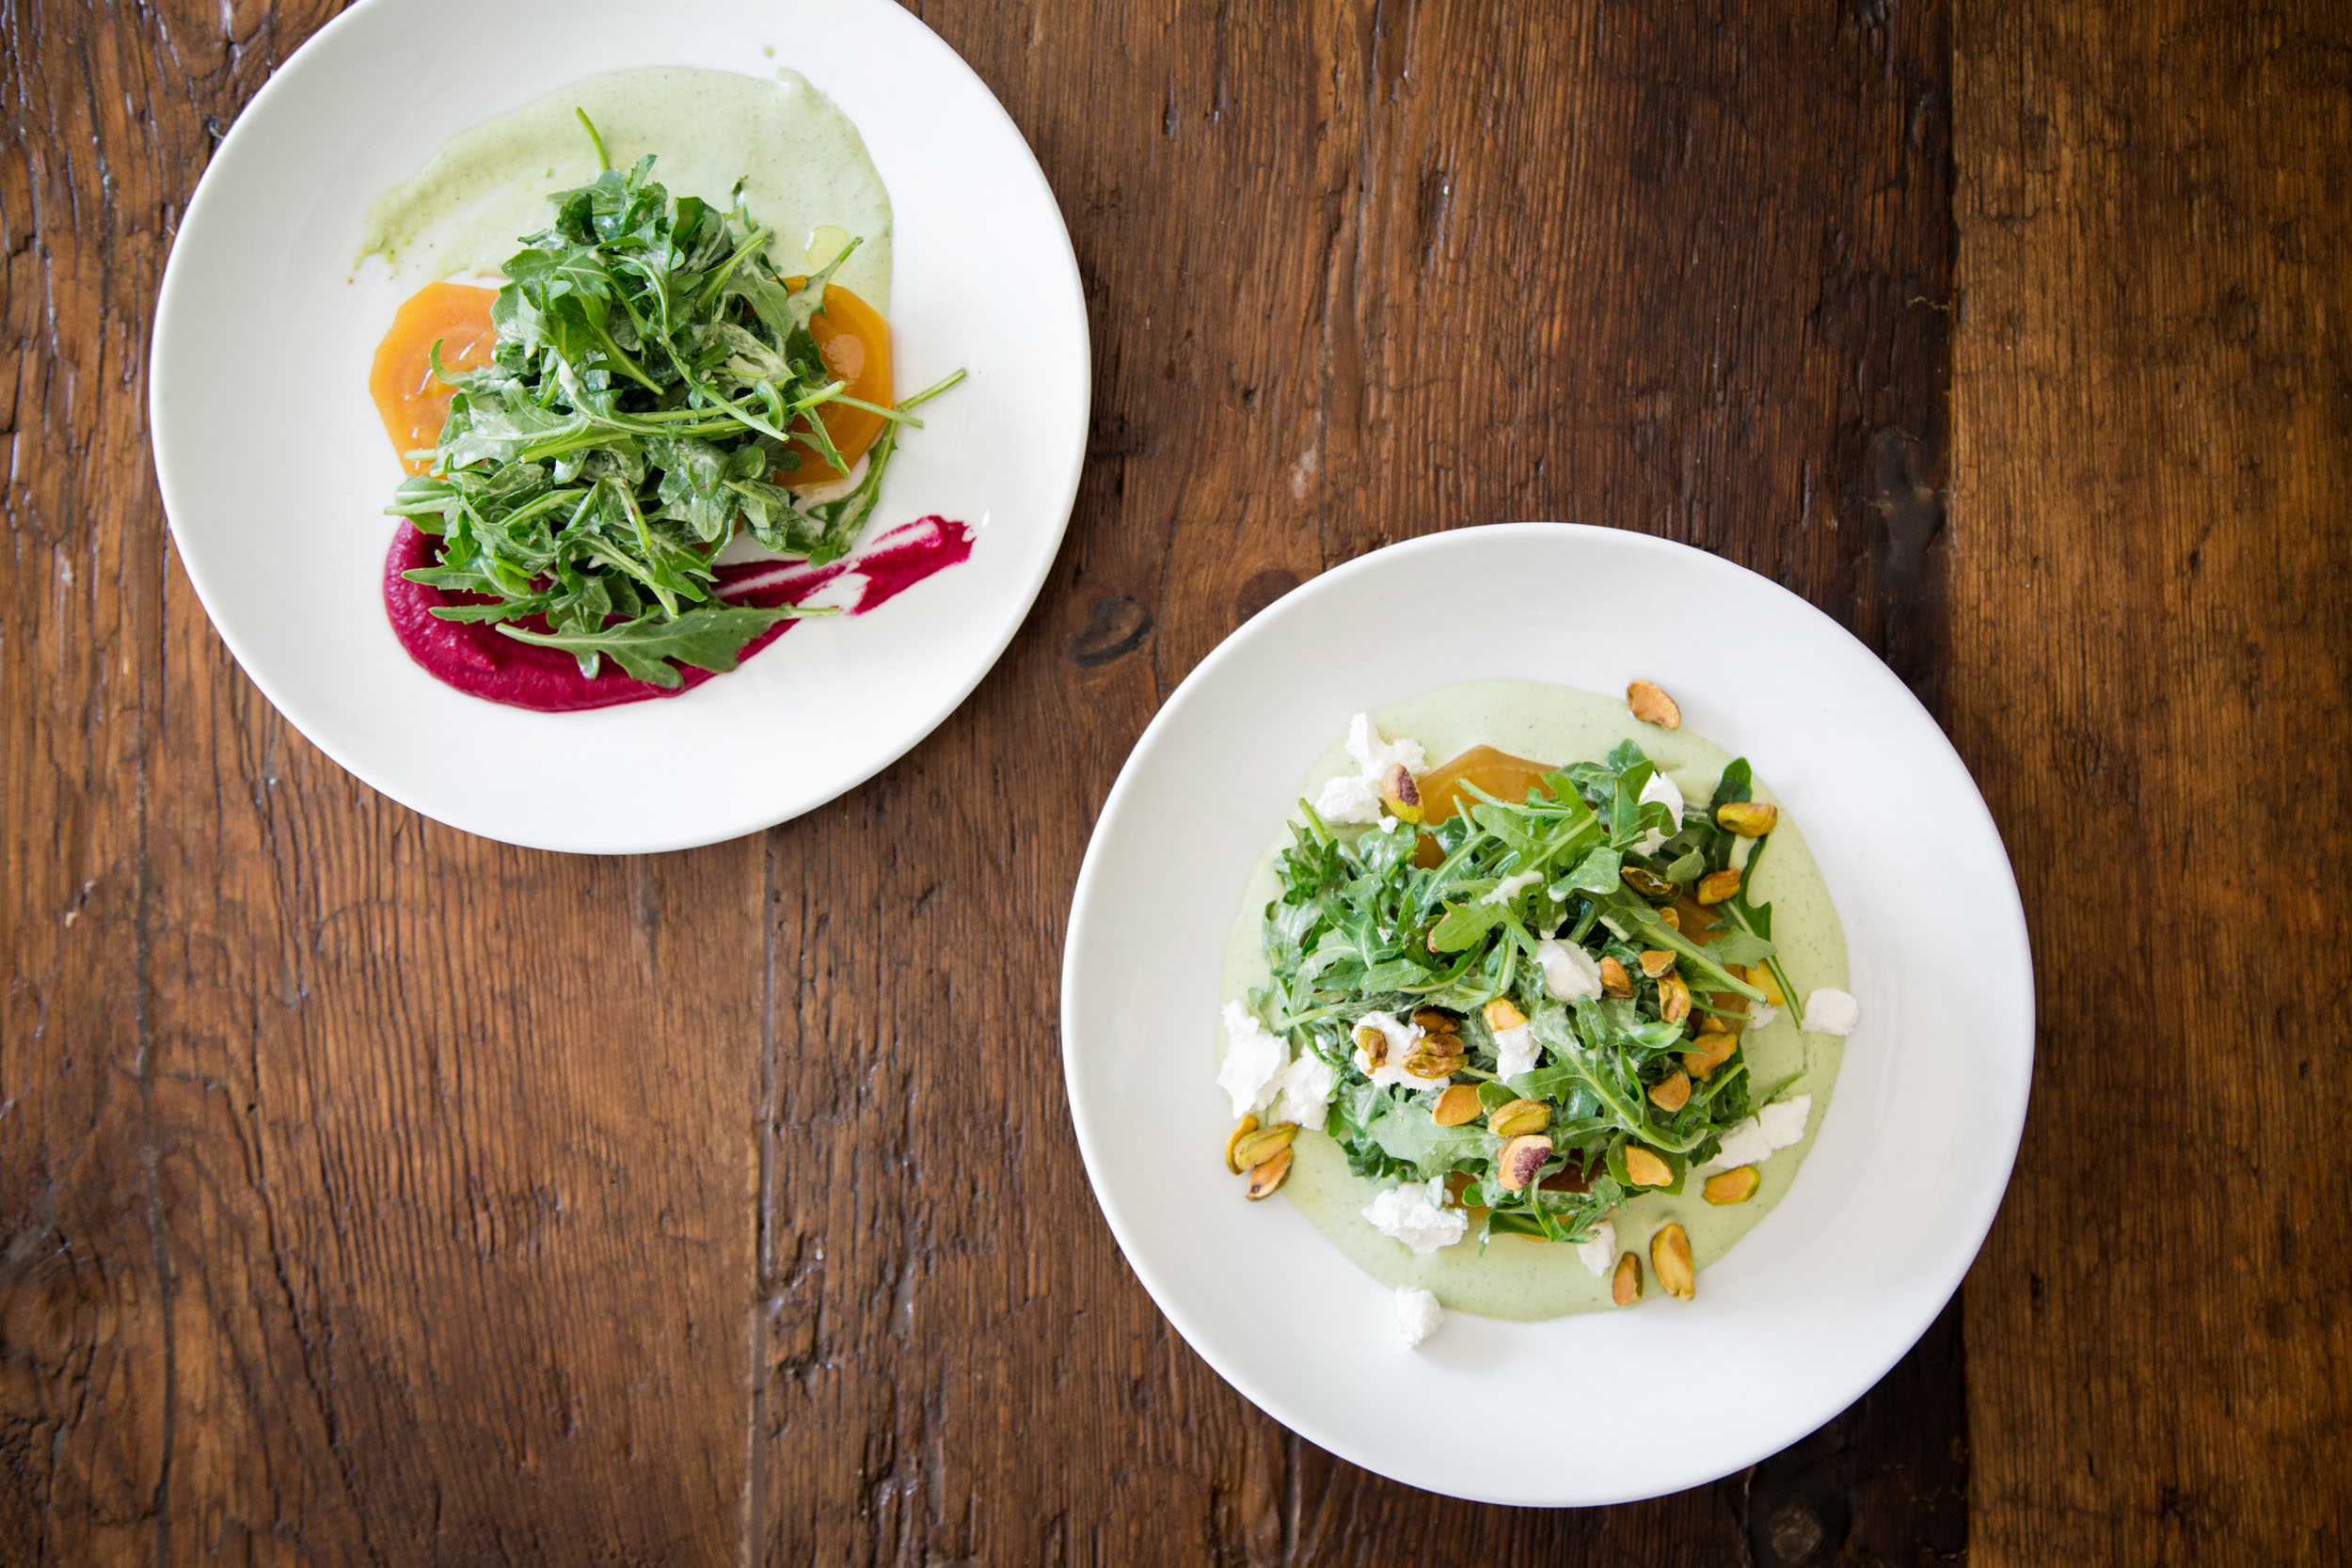 Roasted Golden Beets with Goat Cheese, Hearty Greens, Green Goddess Dressing, and Crushed Pistachios